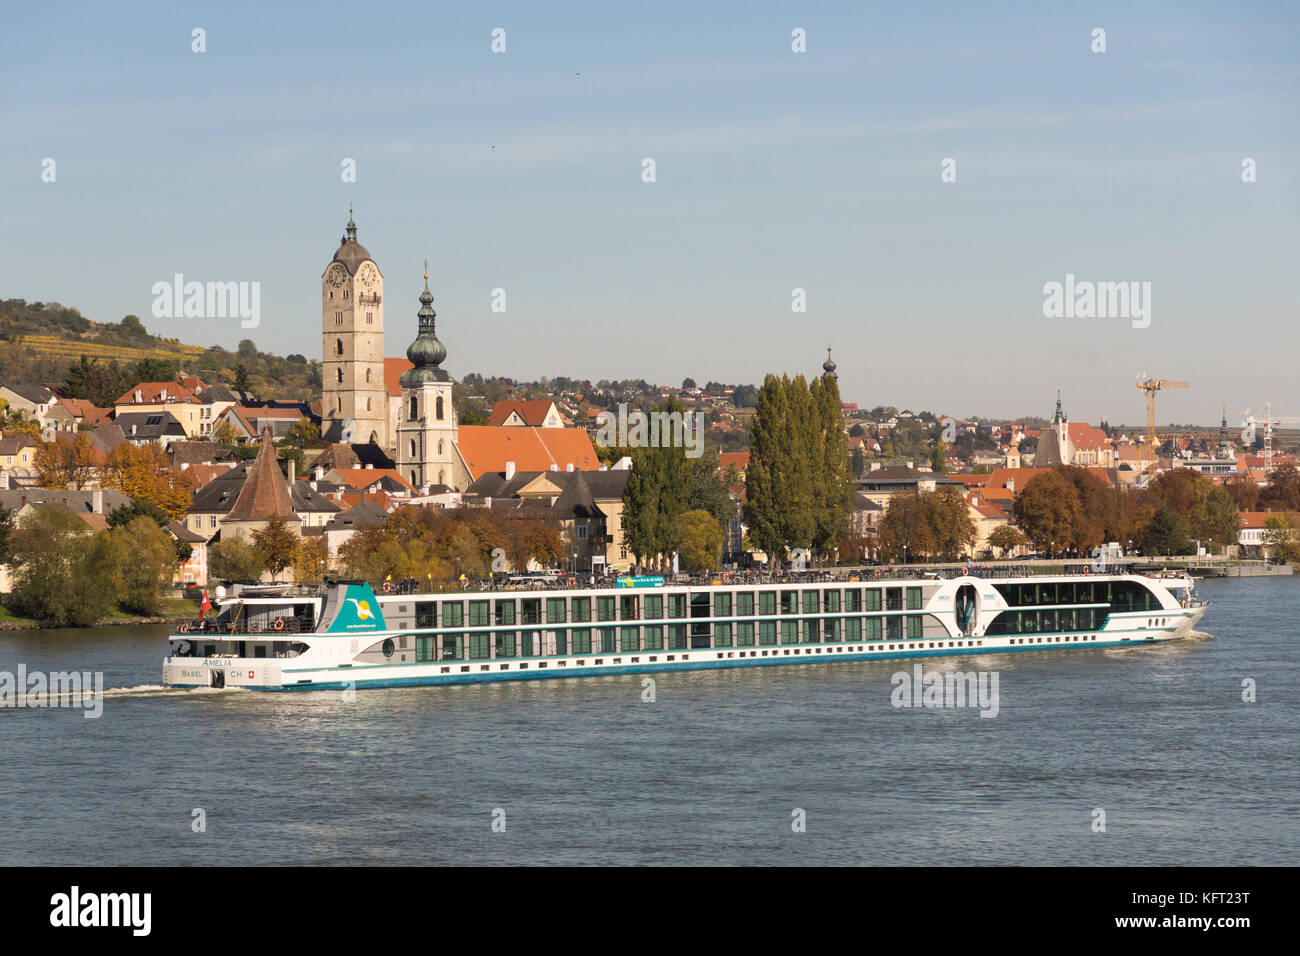 A tourist river cruiser on the river Danube passes in front of the historic centre of Stein an der Donau, UNESCO - Stock Image